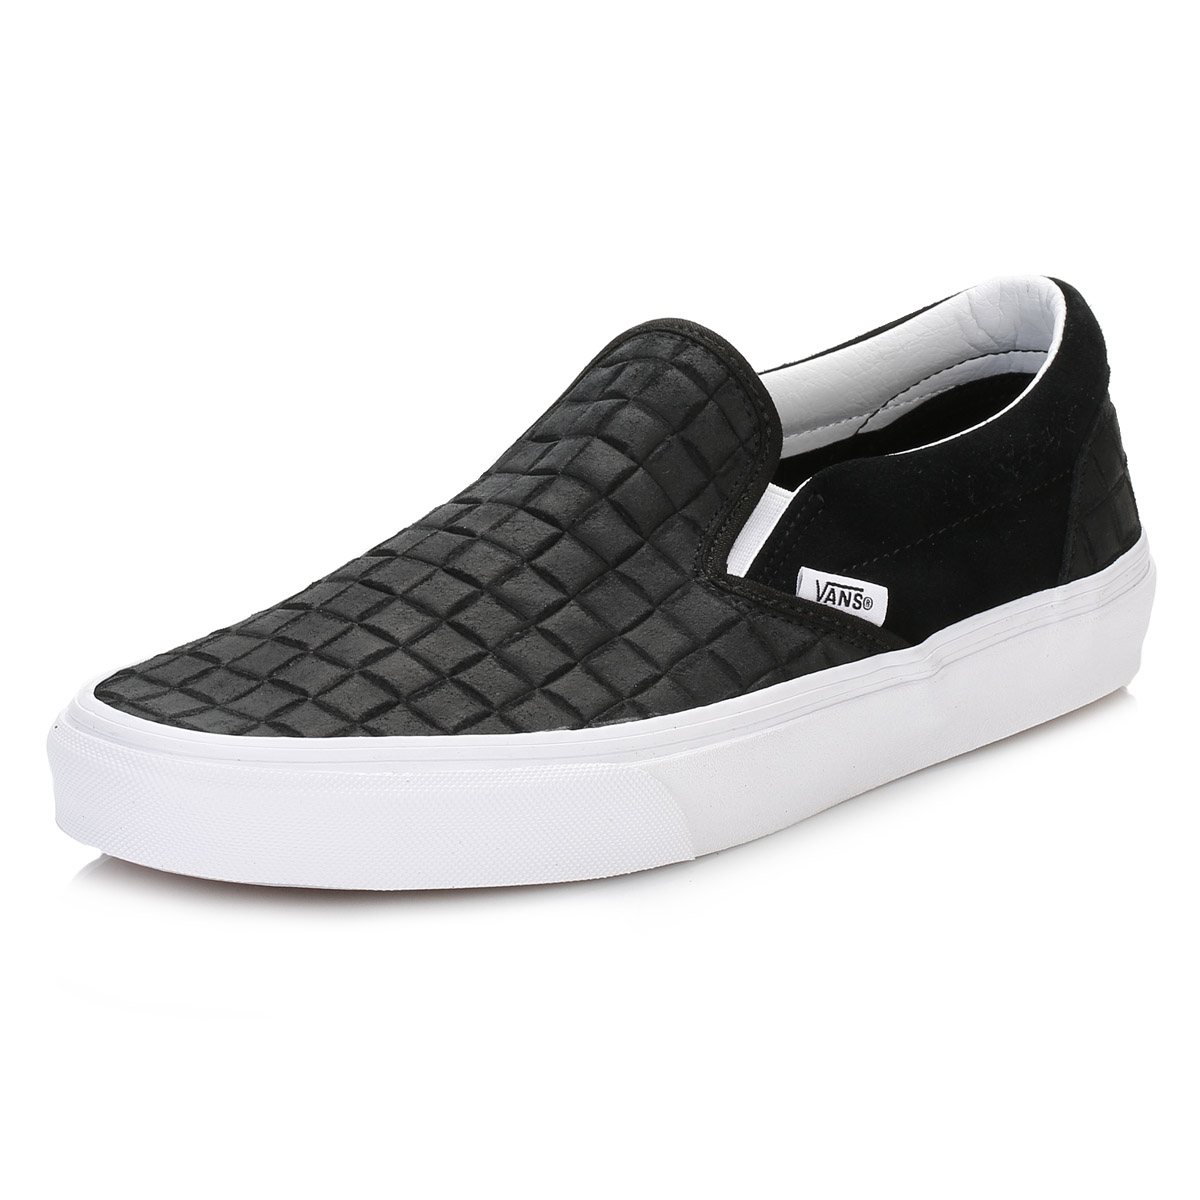 Vans Mens Black Trainers, Suede Checkers, Classic Slip On ...